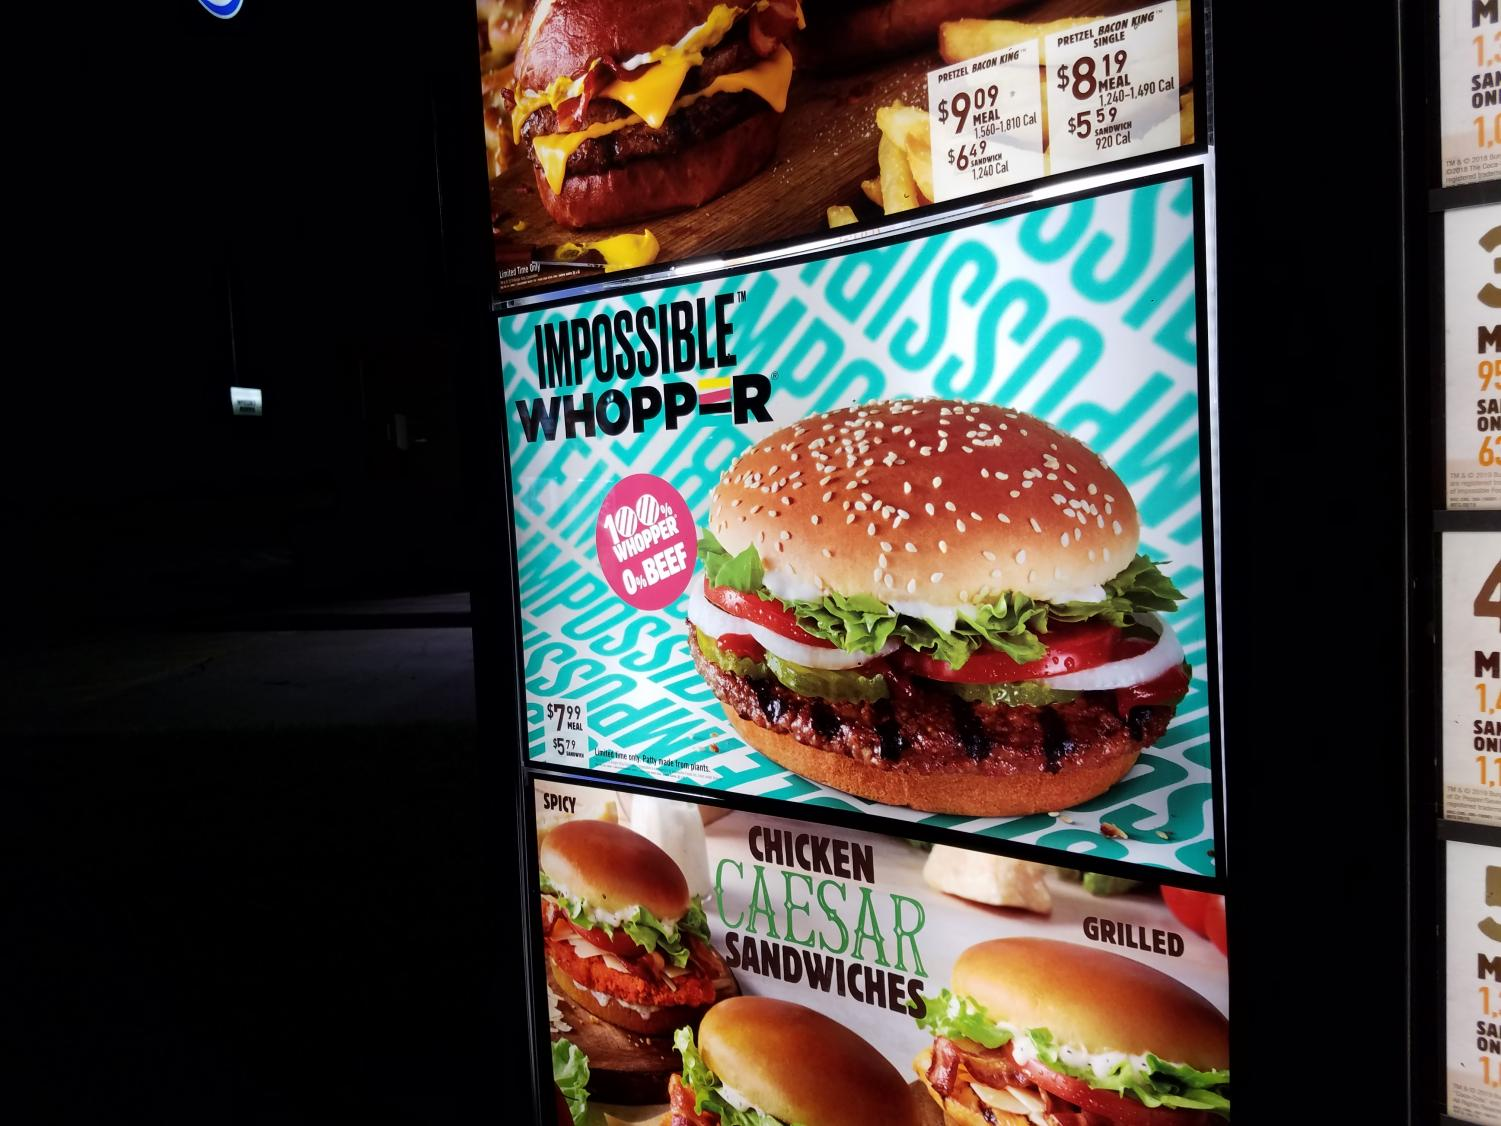 Burger King's outside menu boasts a large section showcasing the new Impossible Whopper alongside its traditional meat-based burgers.